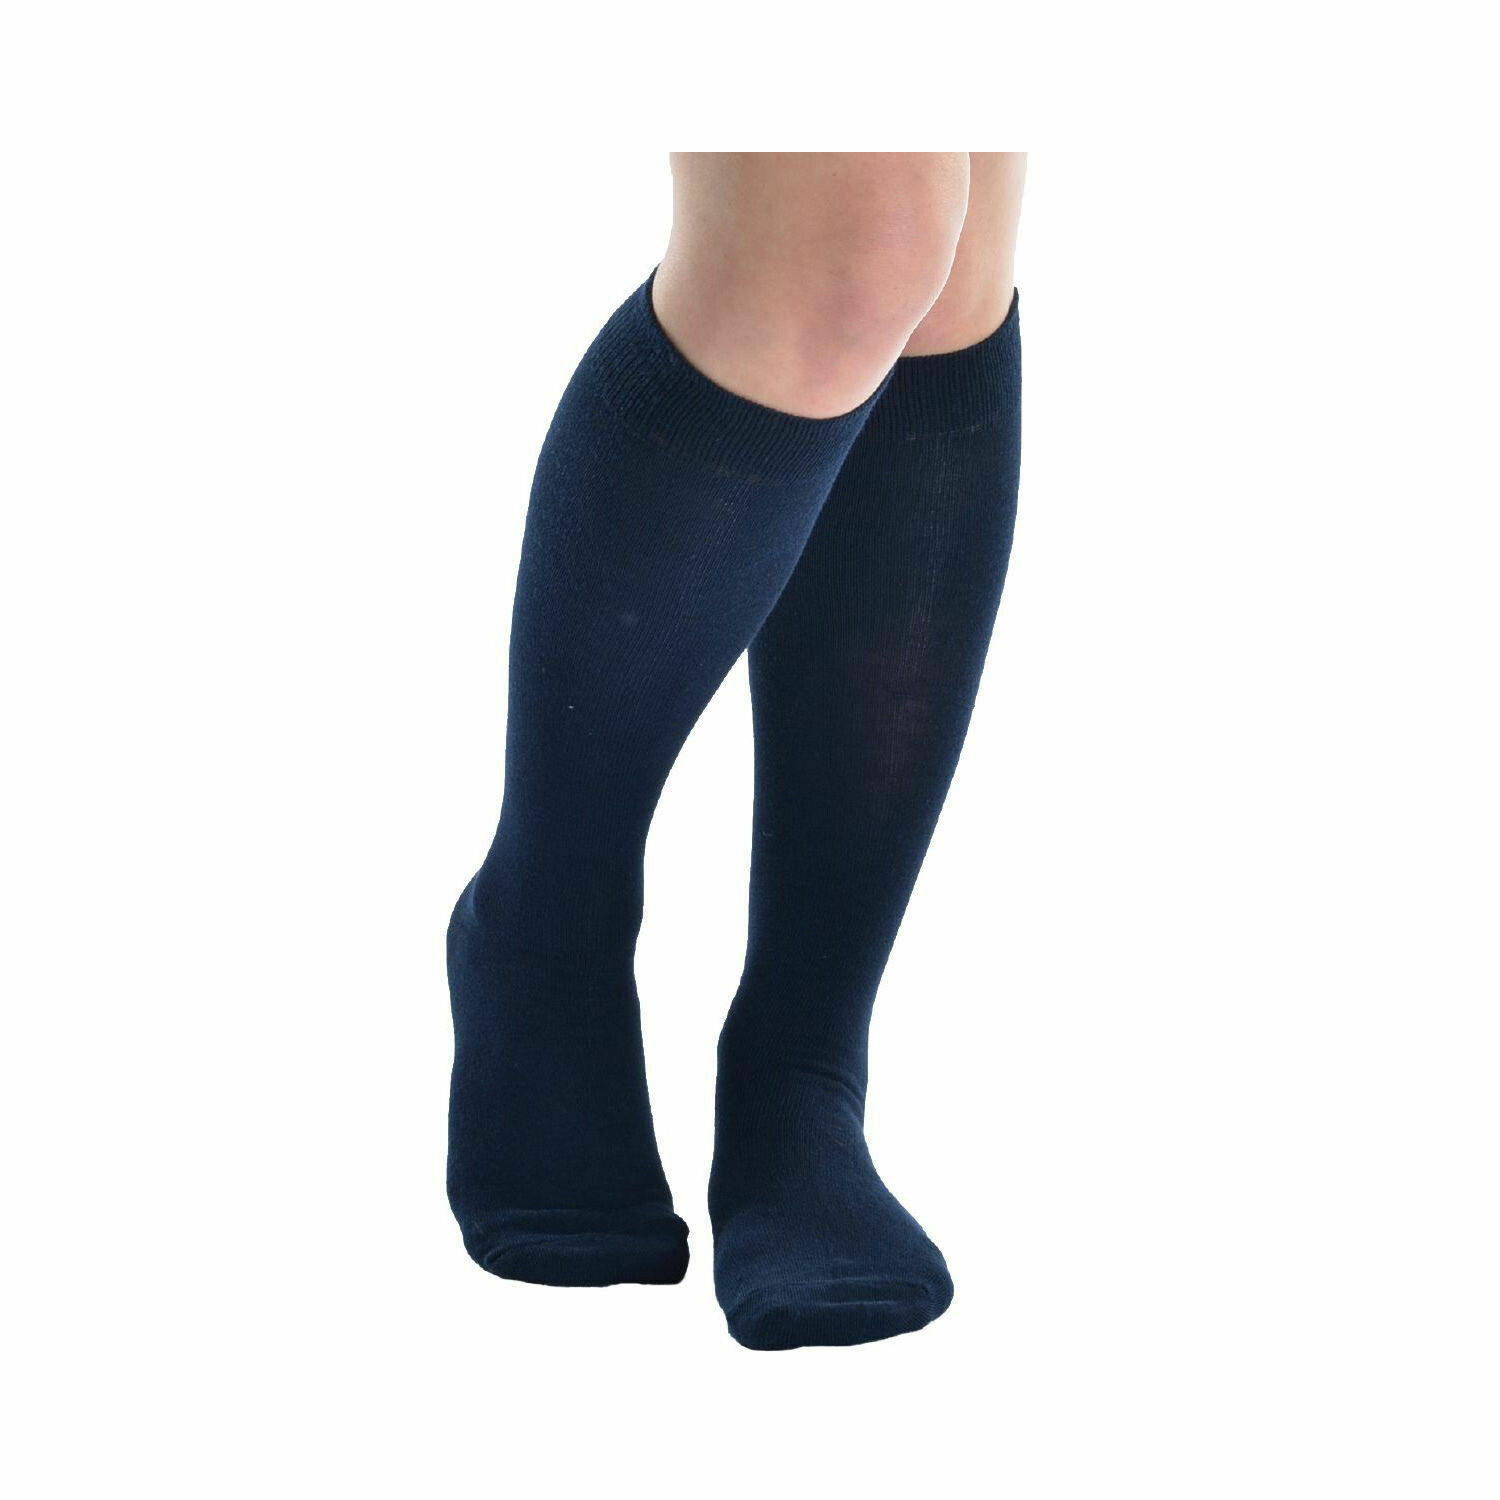 Girls Knee High Socks by Pex in Navy (2 Pair Packs) 'Best Seller'